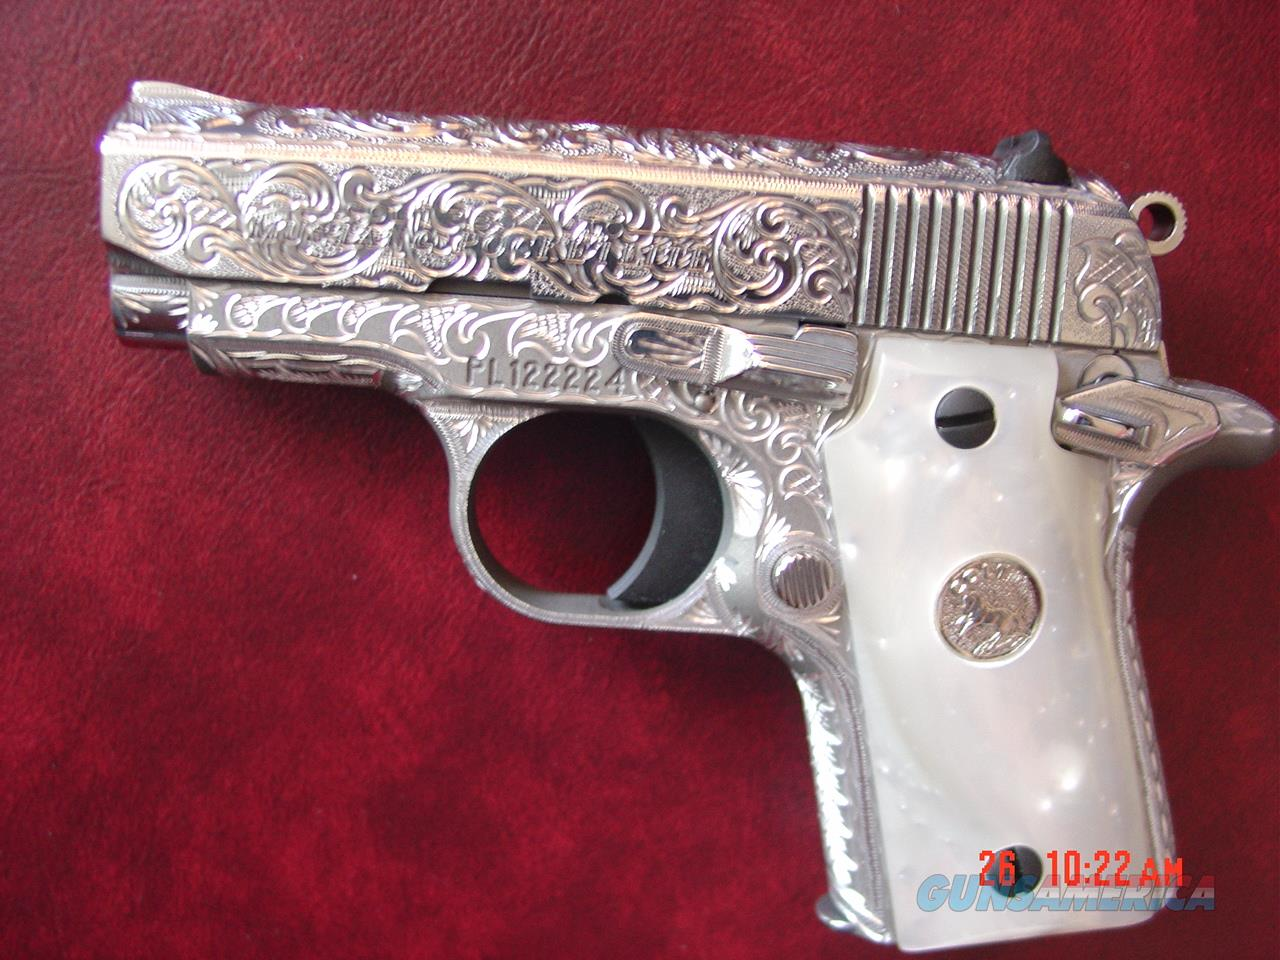 Colt Mustang Pocketlite 380,full deep hand engraved & polished by Flannery Engraving,Pearlite grips,never fired,awesome work of art,& nicer in person !!  Guns > Pistols > Colt Automatic Pistols (.25, .32, & .380 cal)